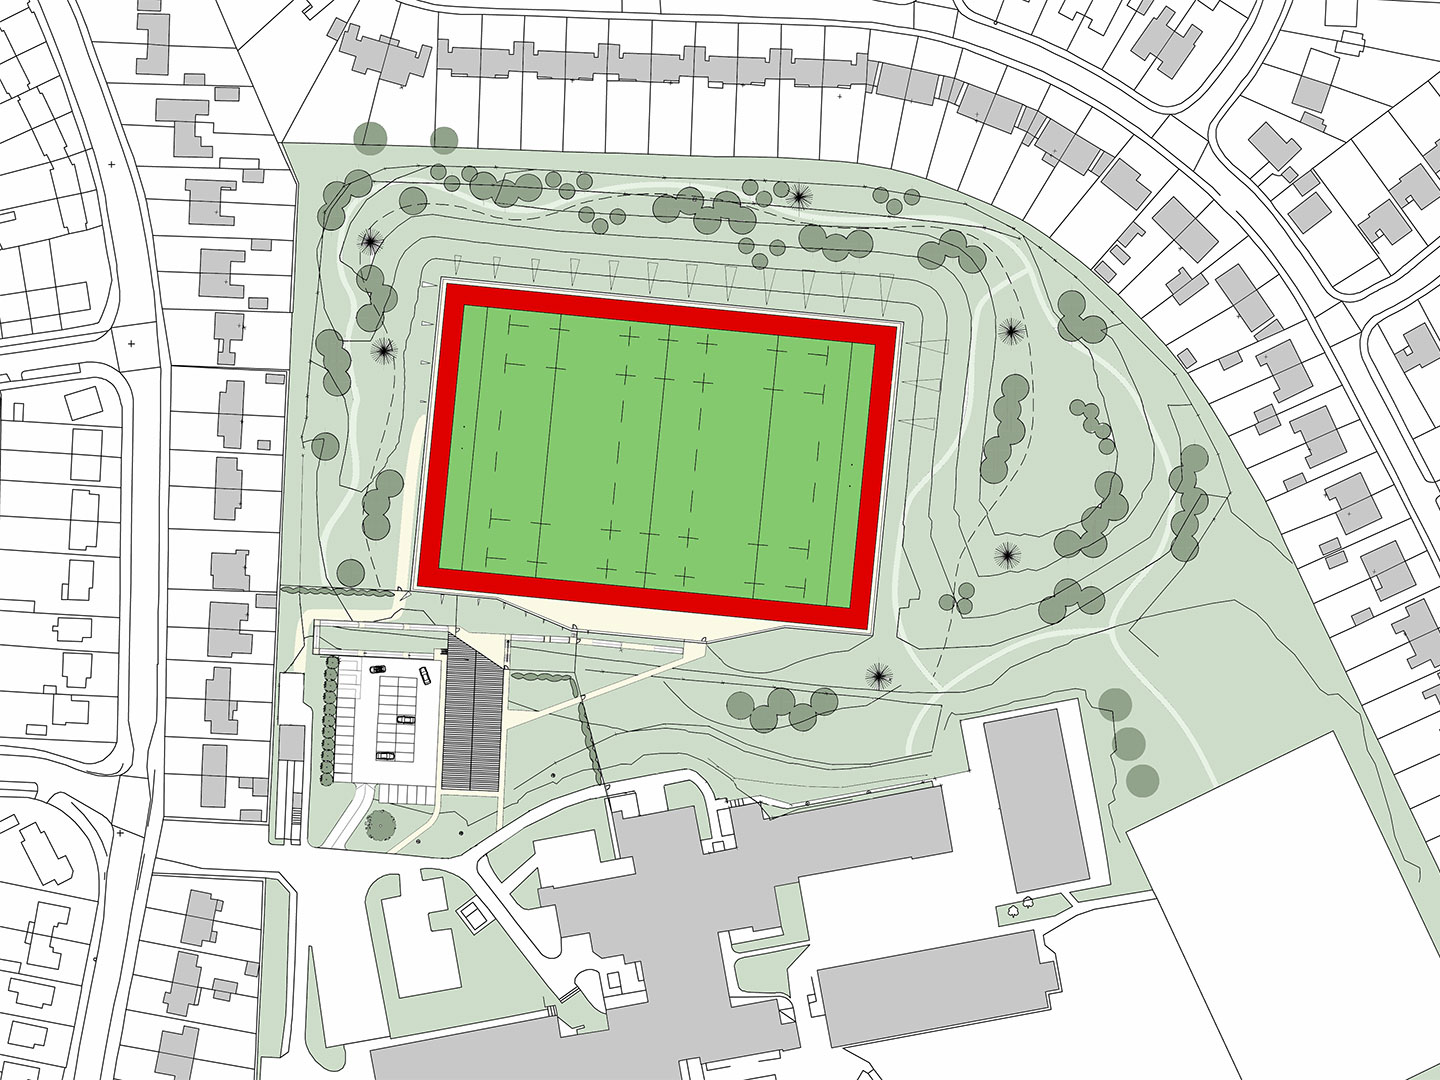 llanishen_rfc_clubhouse-site_plan